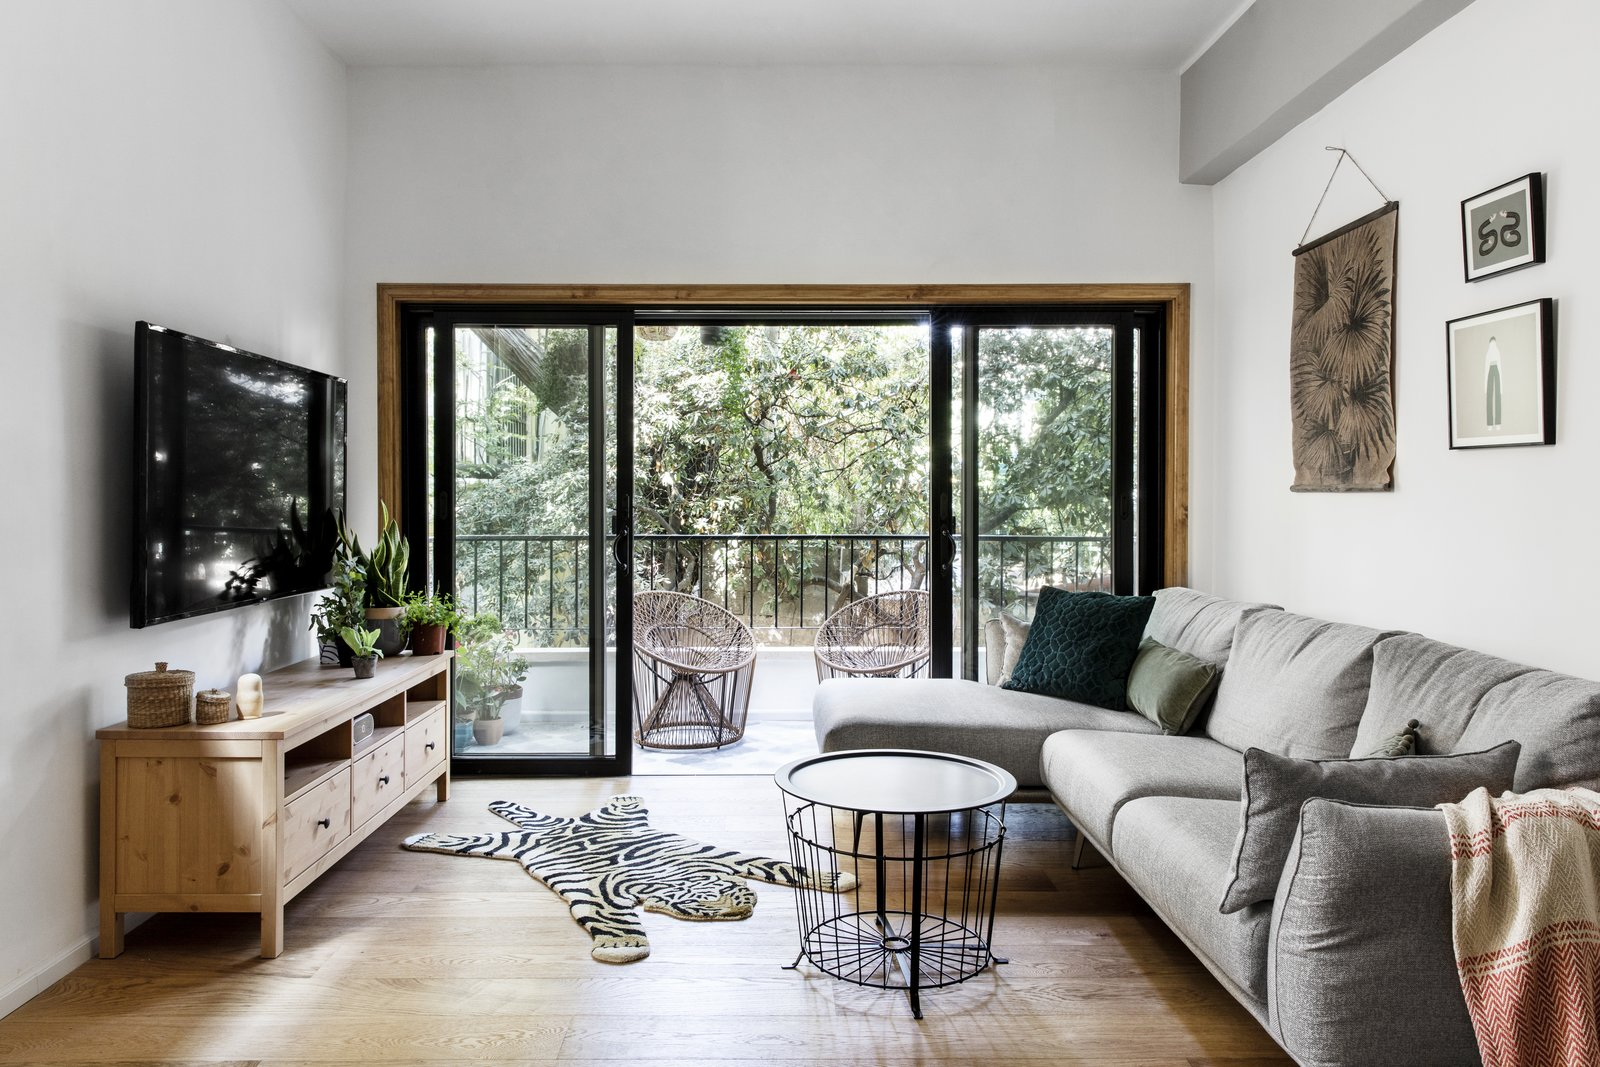 Before & After: A Tiny Tel Aviv Apartment Becomes a Hip Urban Dwelling